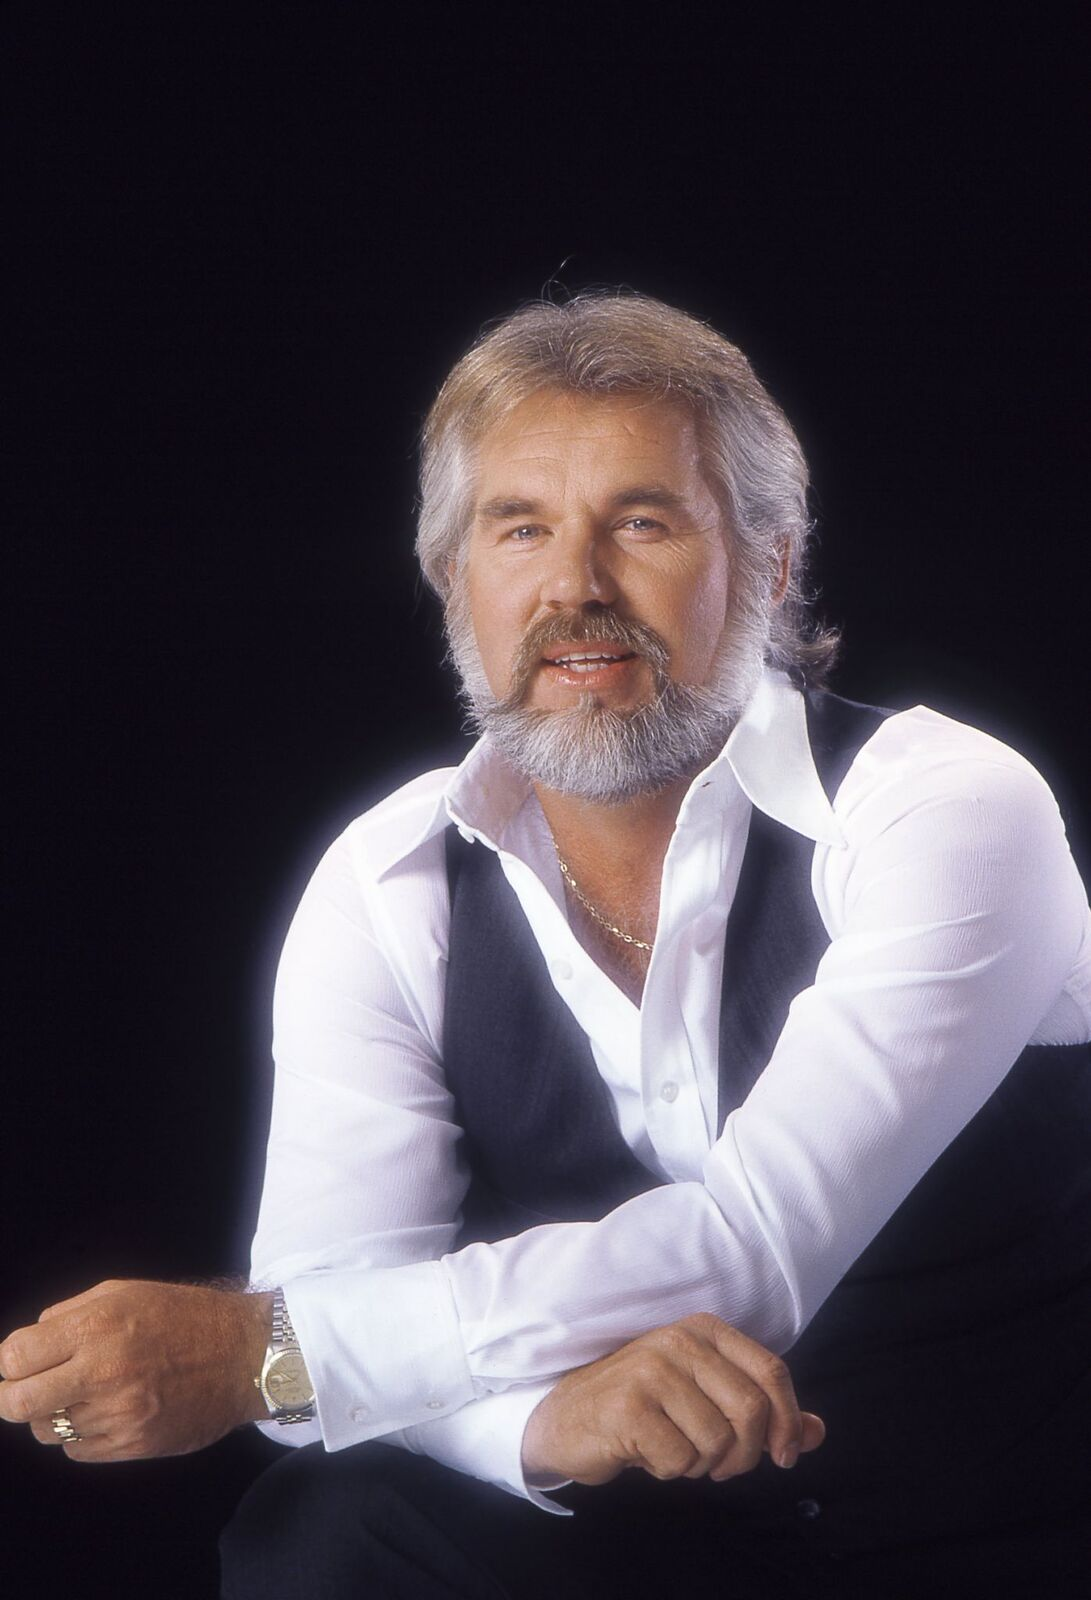 Singer Kenny Rogers poses for a portrait in 1979 in Los Angeles, California. | Source: Getty Images